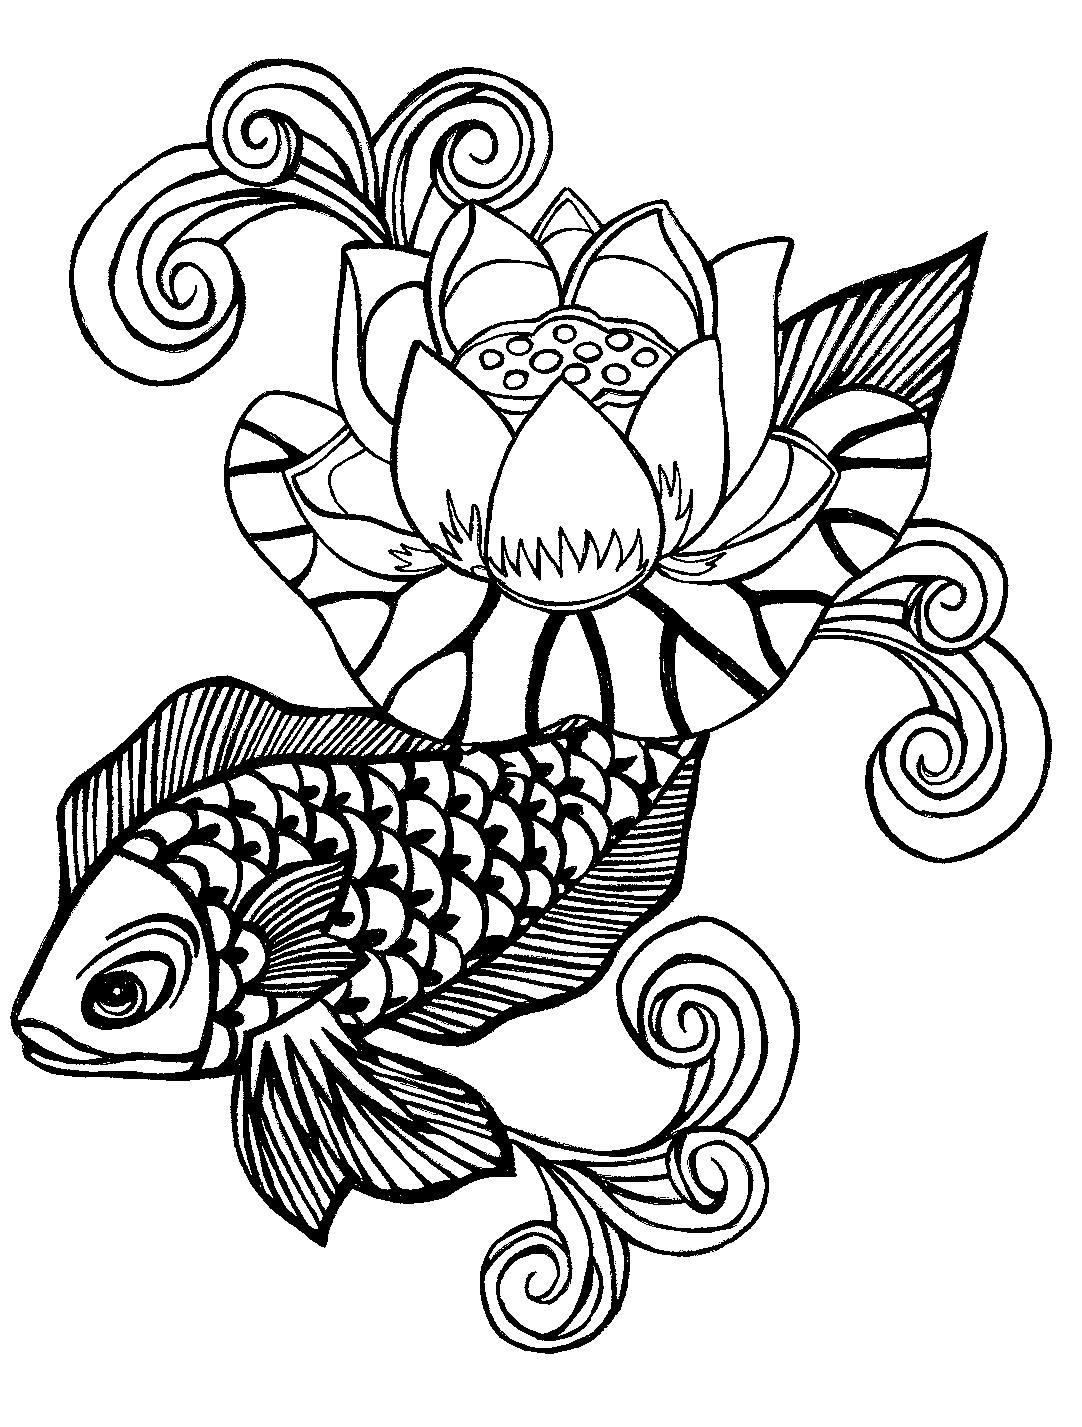 Lotus flower and fish black and white tattoo design izmirmasajfo